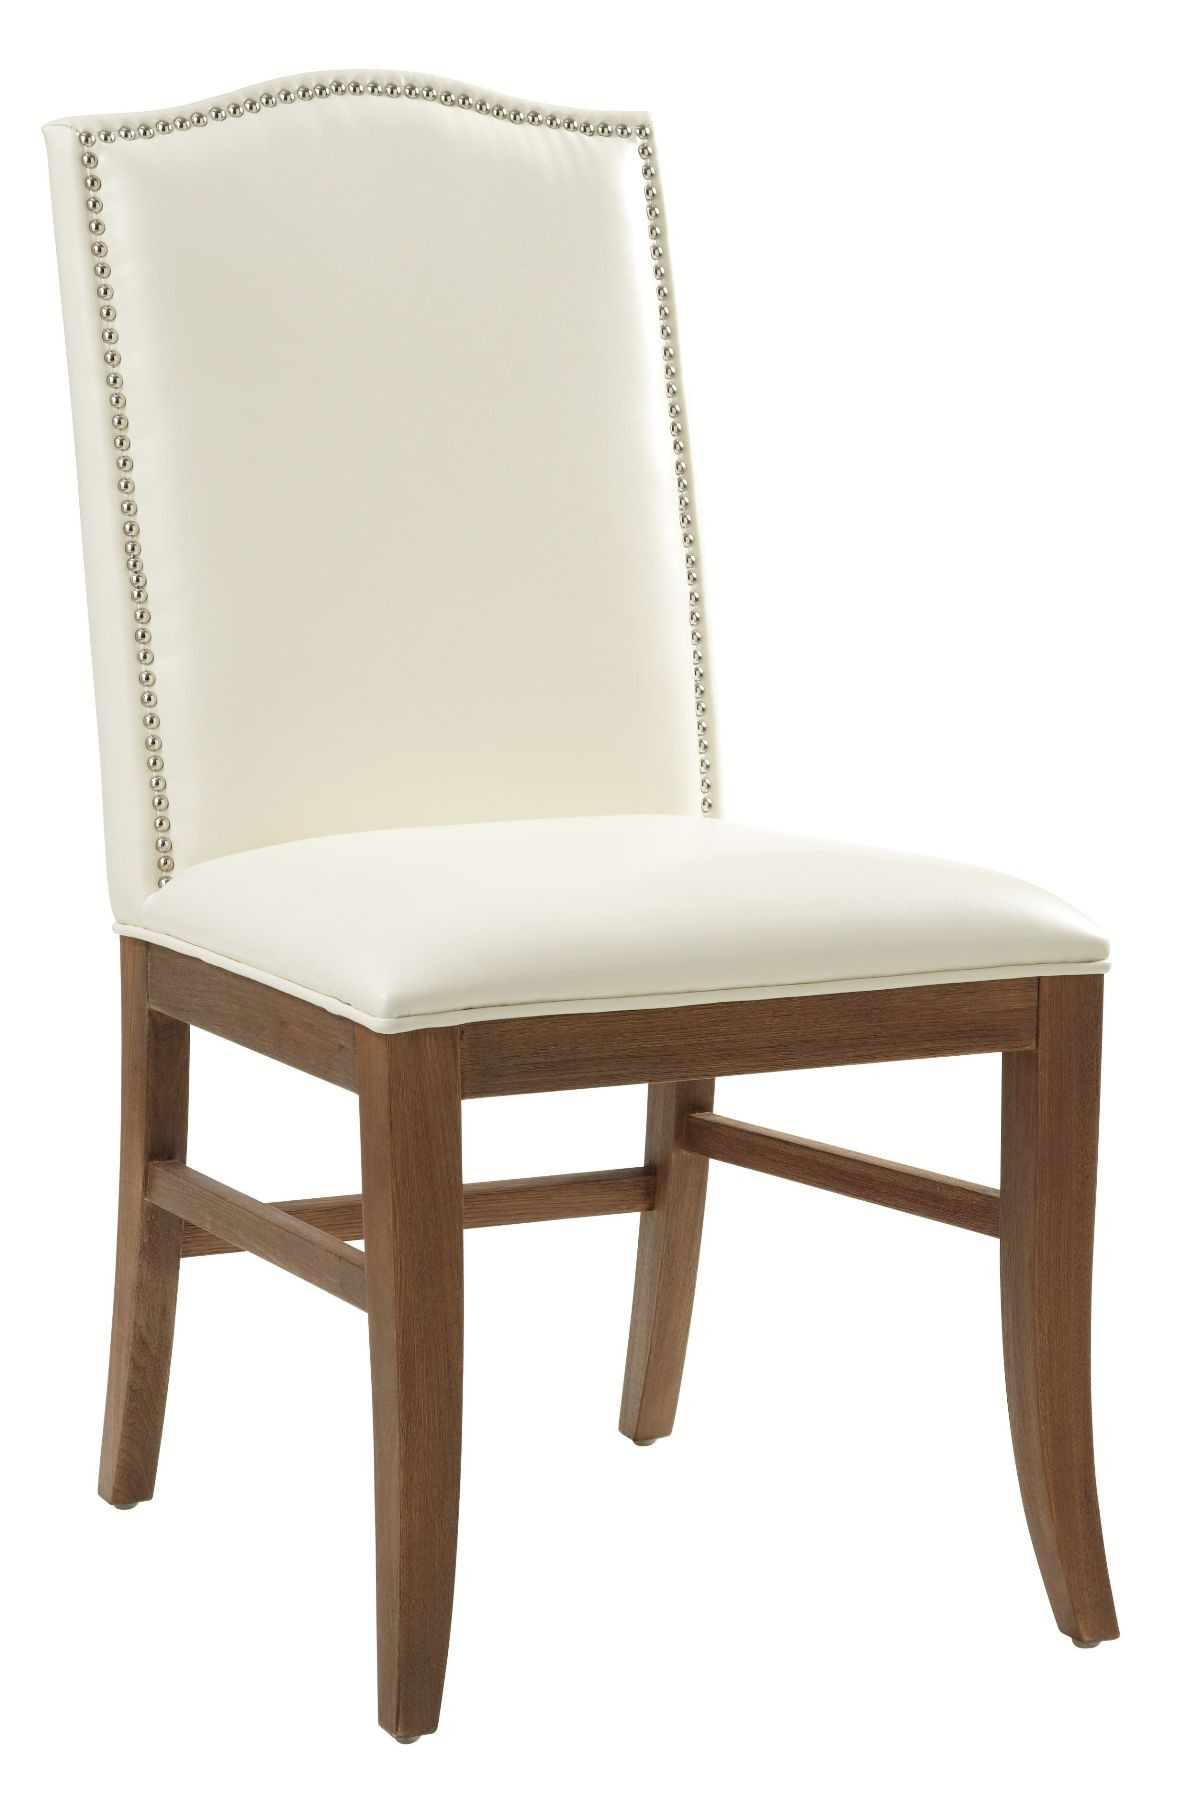 Maison Ivory Leather Dining Chair Set of 2, 18606RL, Sunpan